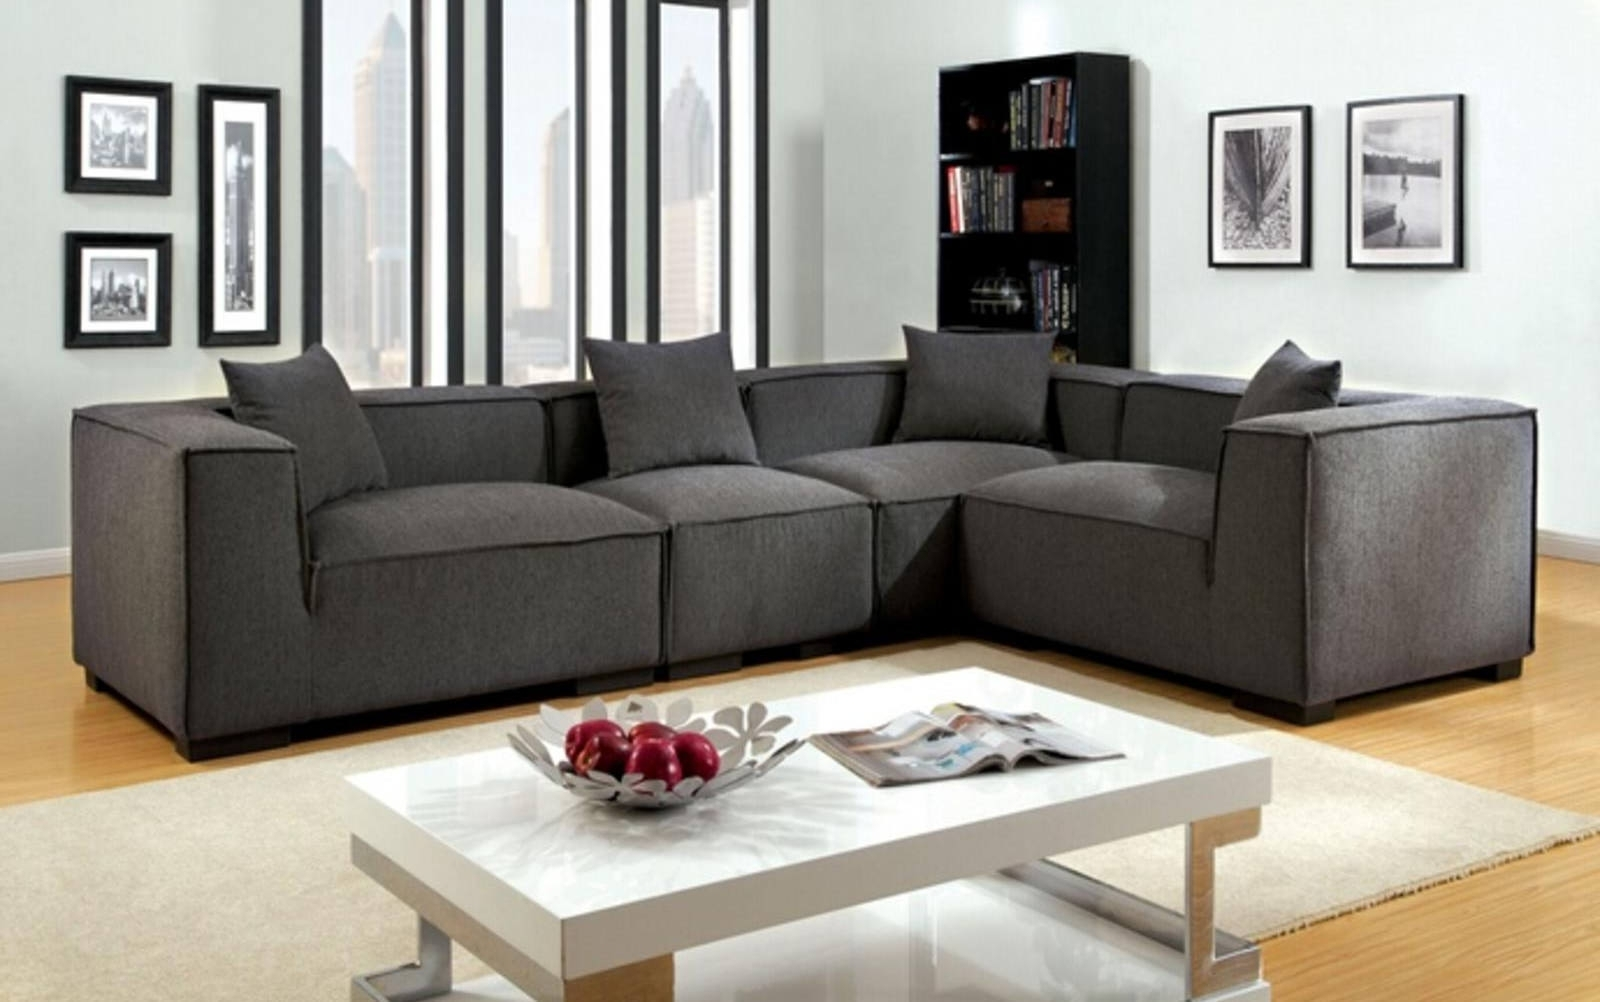 Design With Regard To Widely Used Structube Sectional Sofas (View 14 of 15)